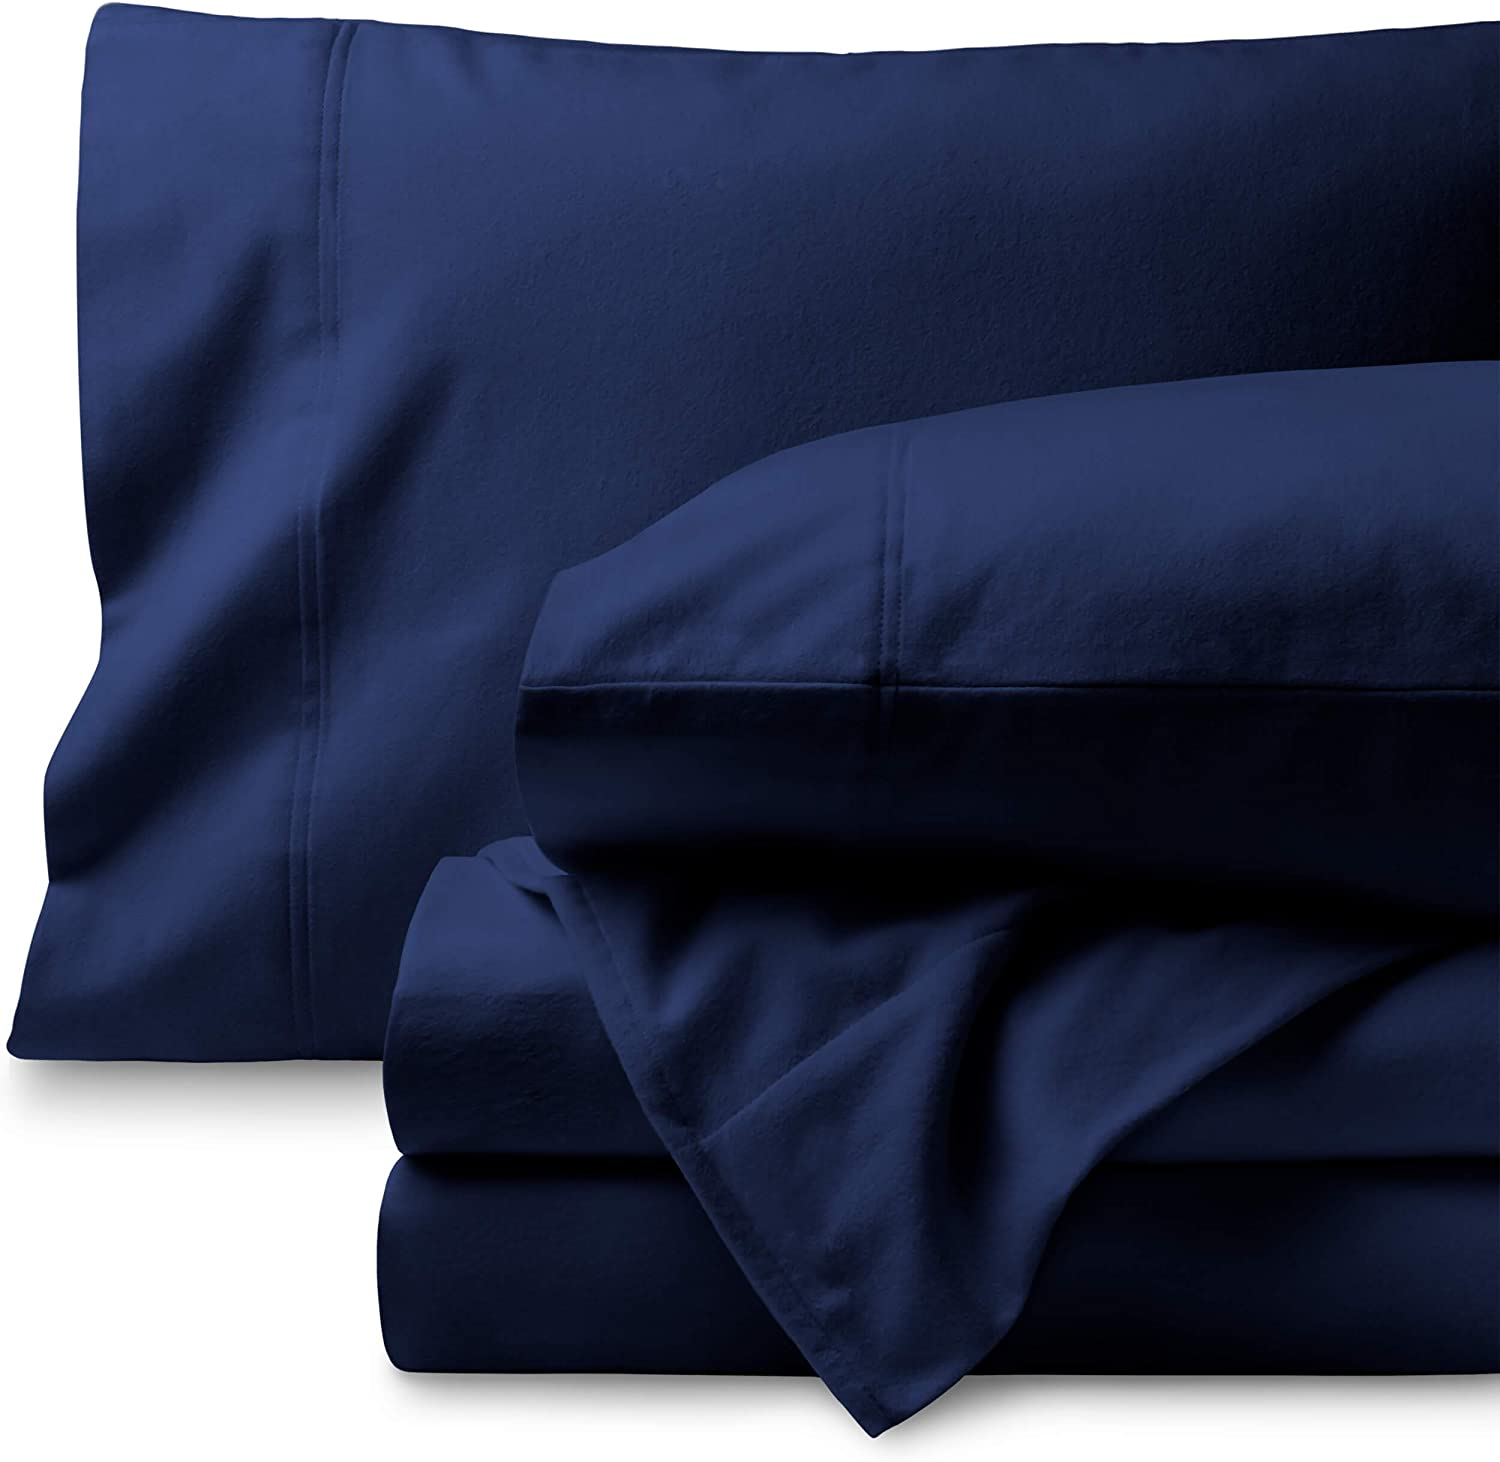 Bare Home Flannel Sheet Set 100% Cotton, Velvety Soft Heavyweight - Double Brushed Flannel - Deep Pocket (Queen, Dark bluee)